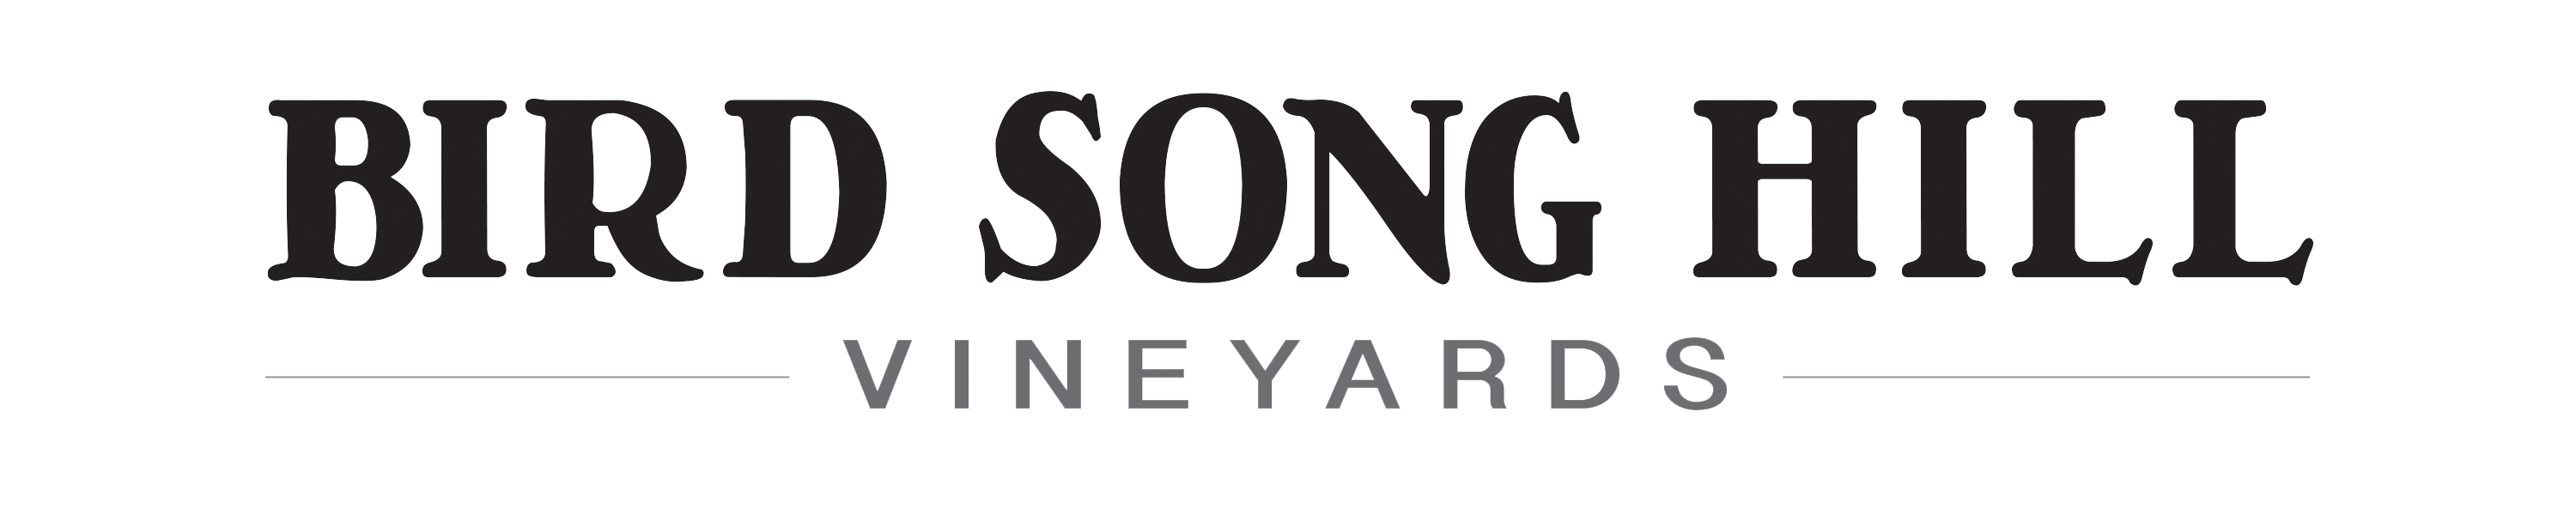 Bird Song Hill Vineyards